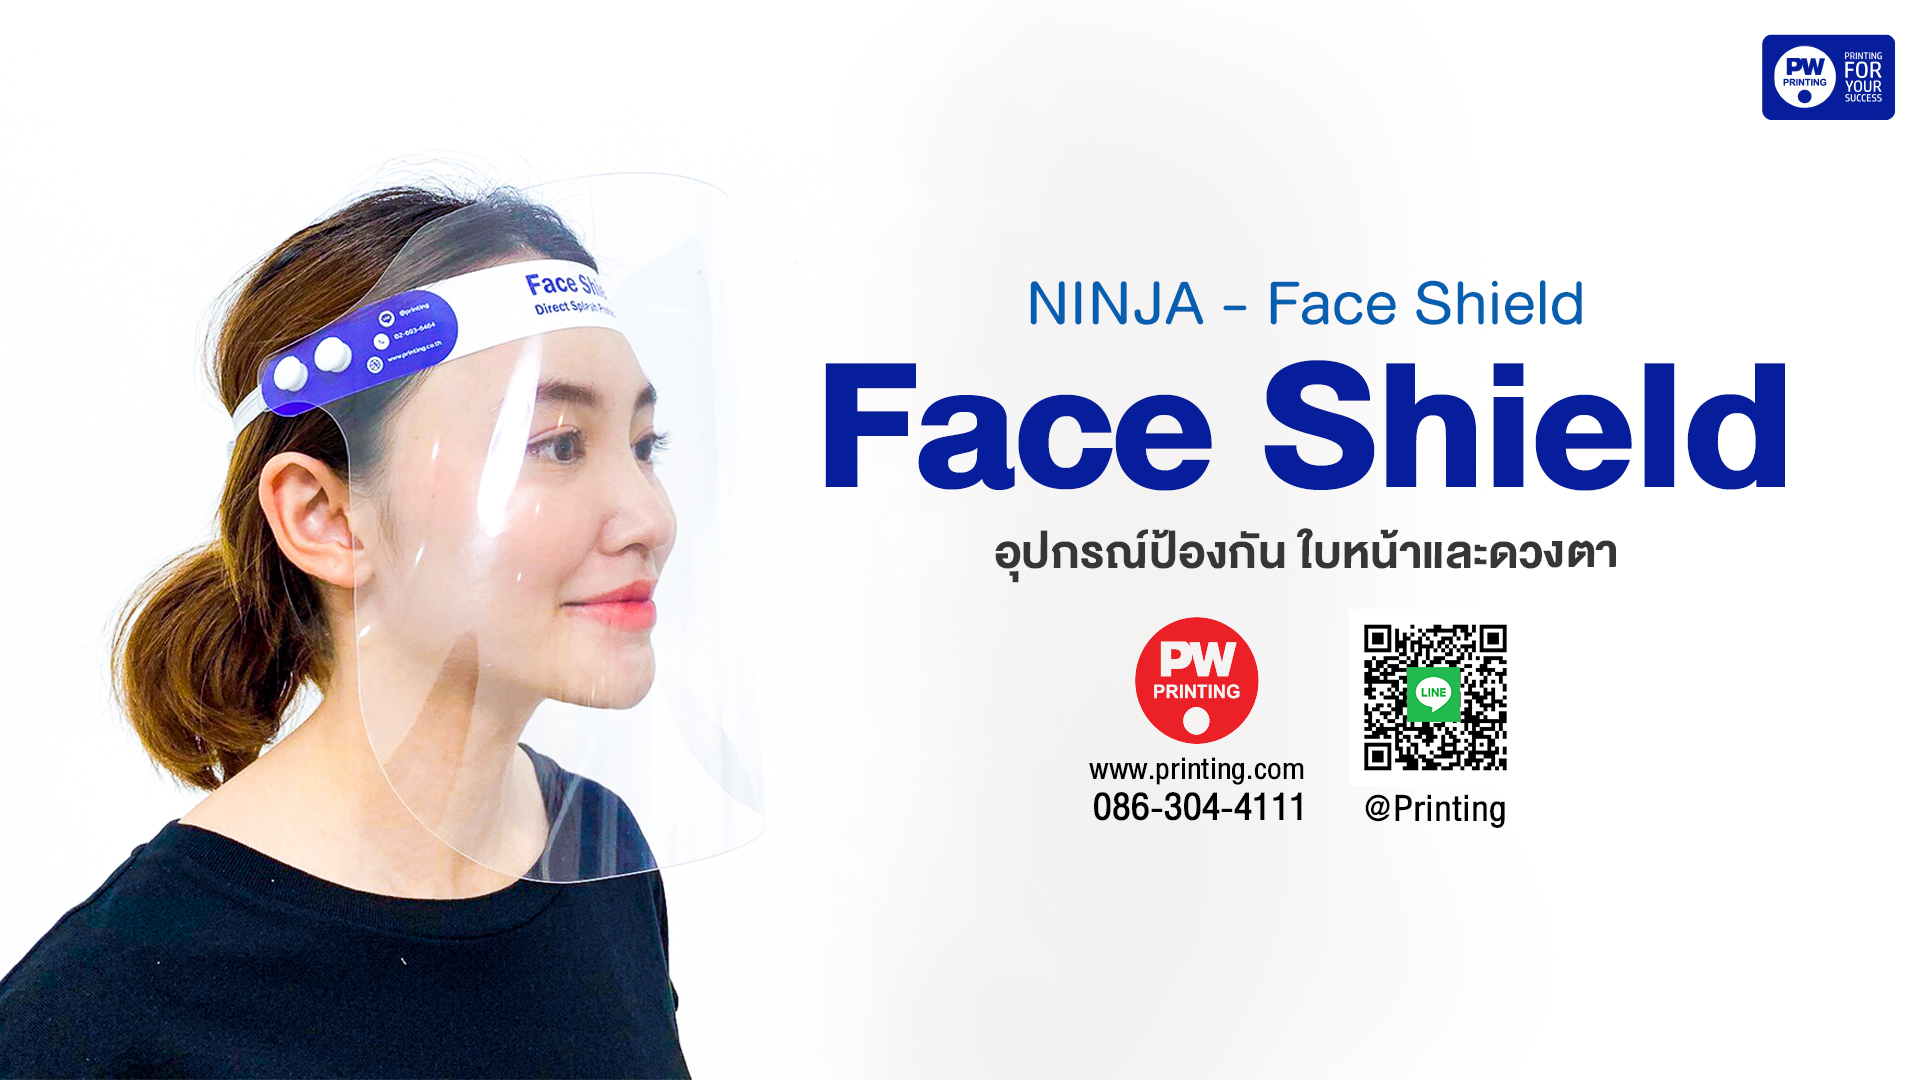 NINJA Face Shield by PW printing Co.,Ltd.